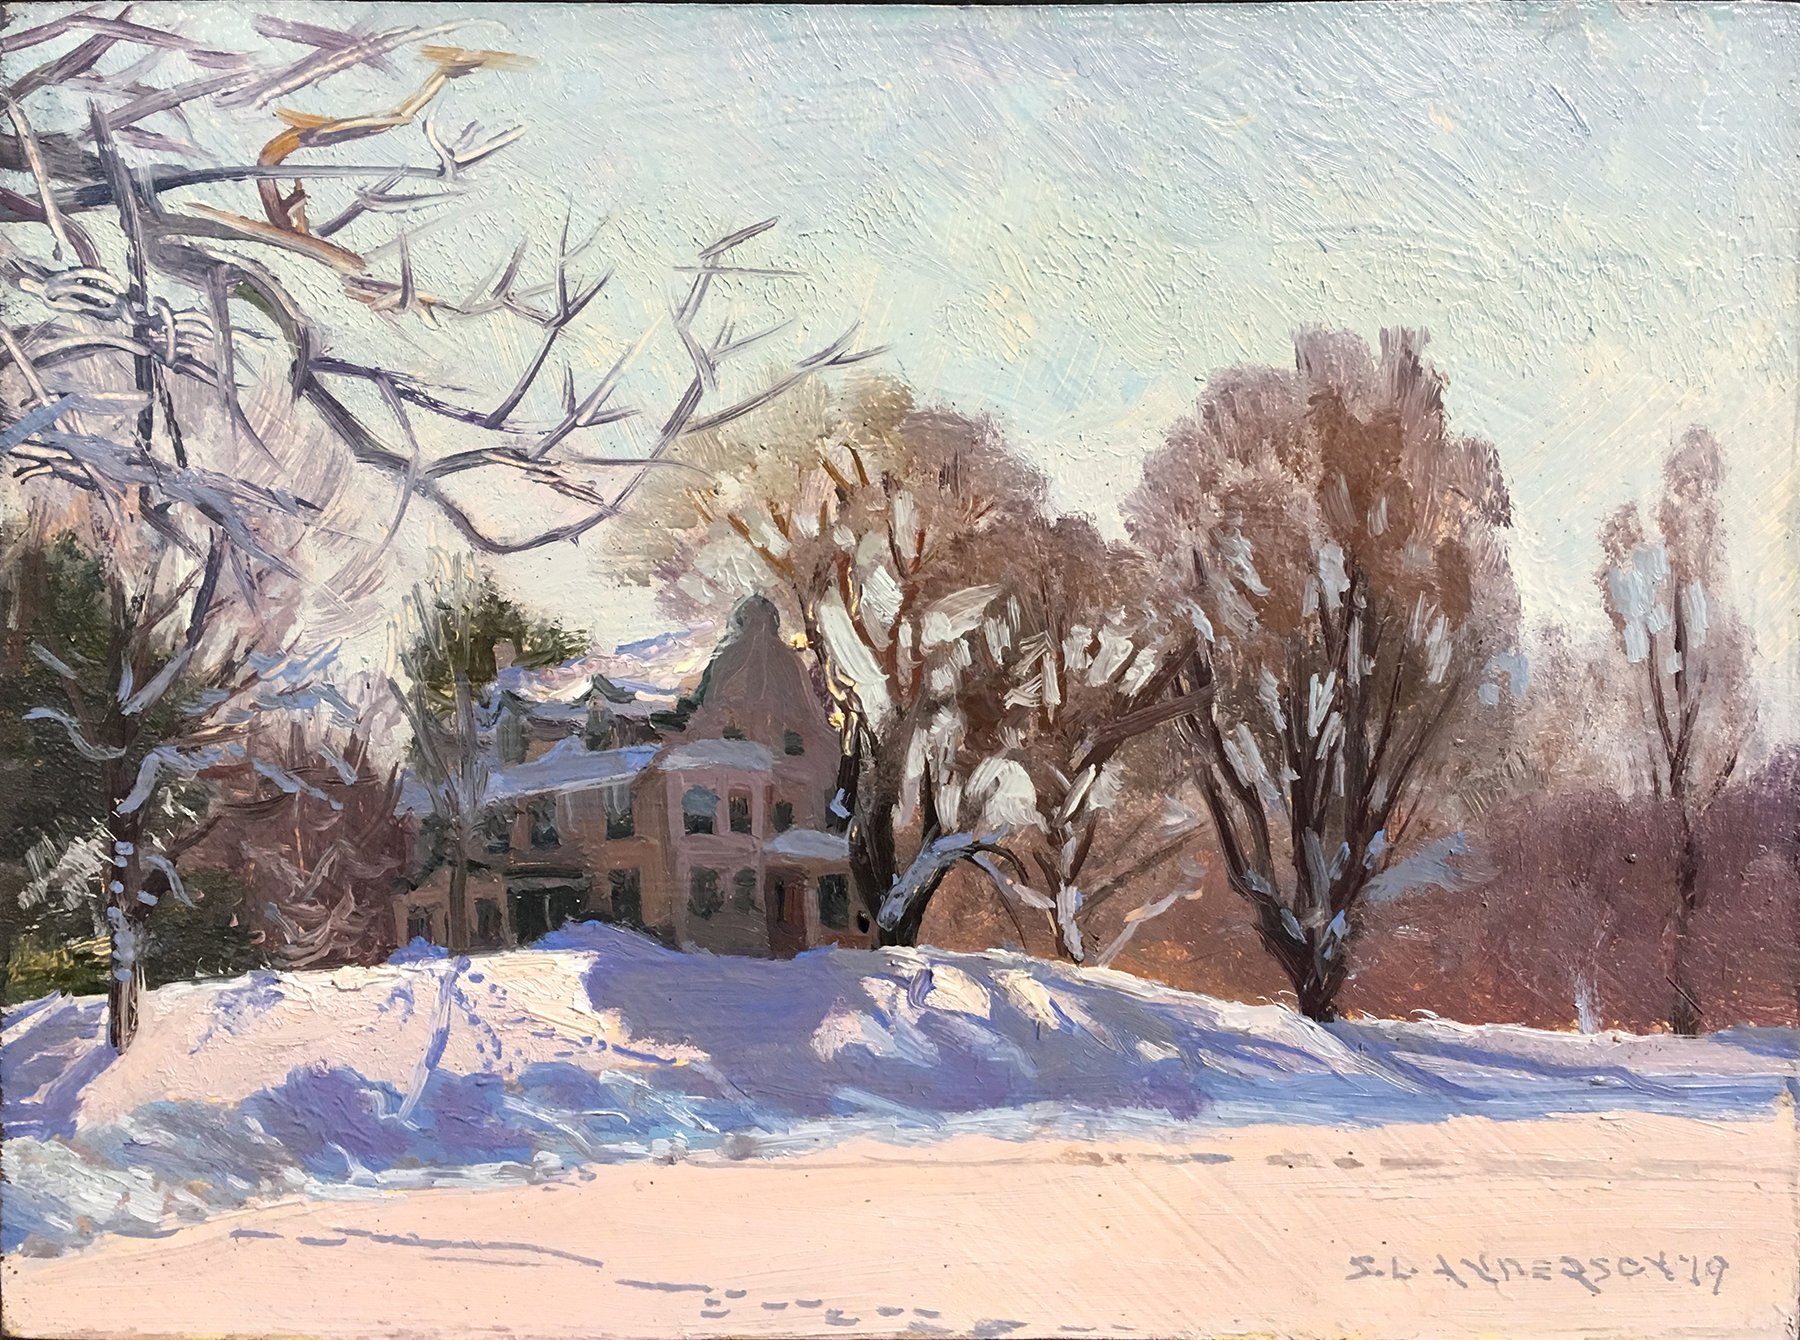 Farmstead Park, Winter  6 x 8 oil on panel The Theodore Wirth Home and Administration Building is listed on the National Register of Historic Places. His work on the Minneapolis park system influenced park planning for municipal, state and national parks across the country. Behind it is a primo sledding hill.   .